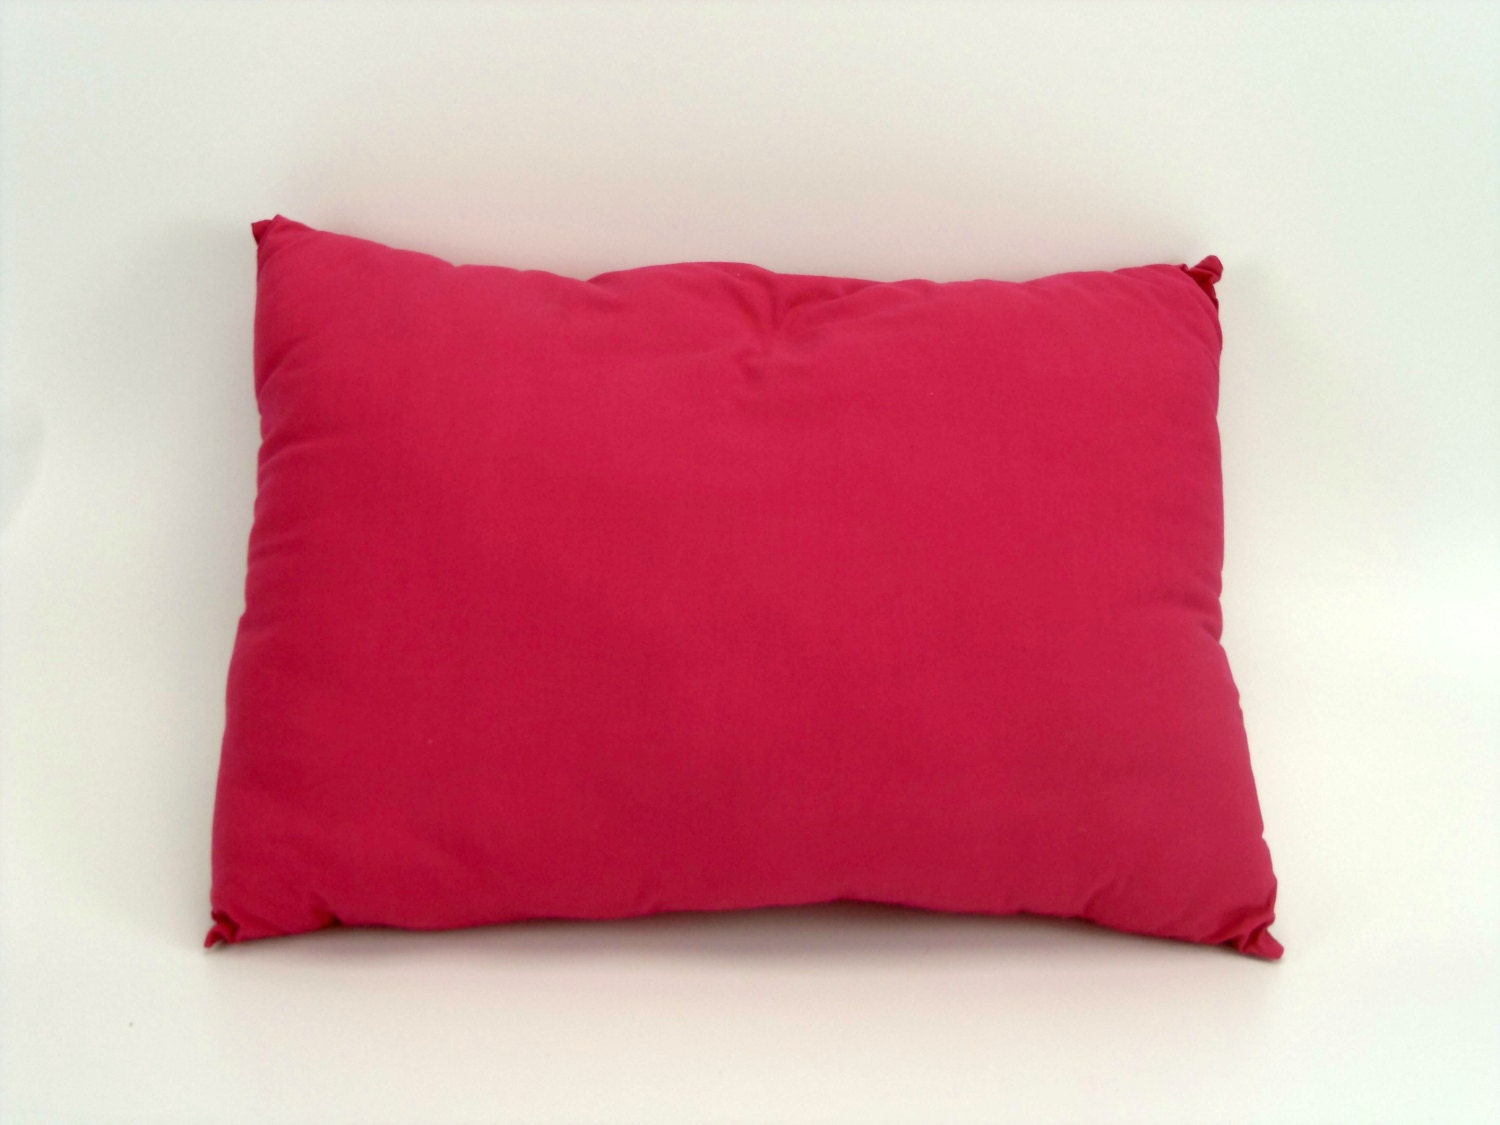 Decorative Throw Pillow Gift For Her Solid Pink Cotton